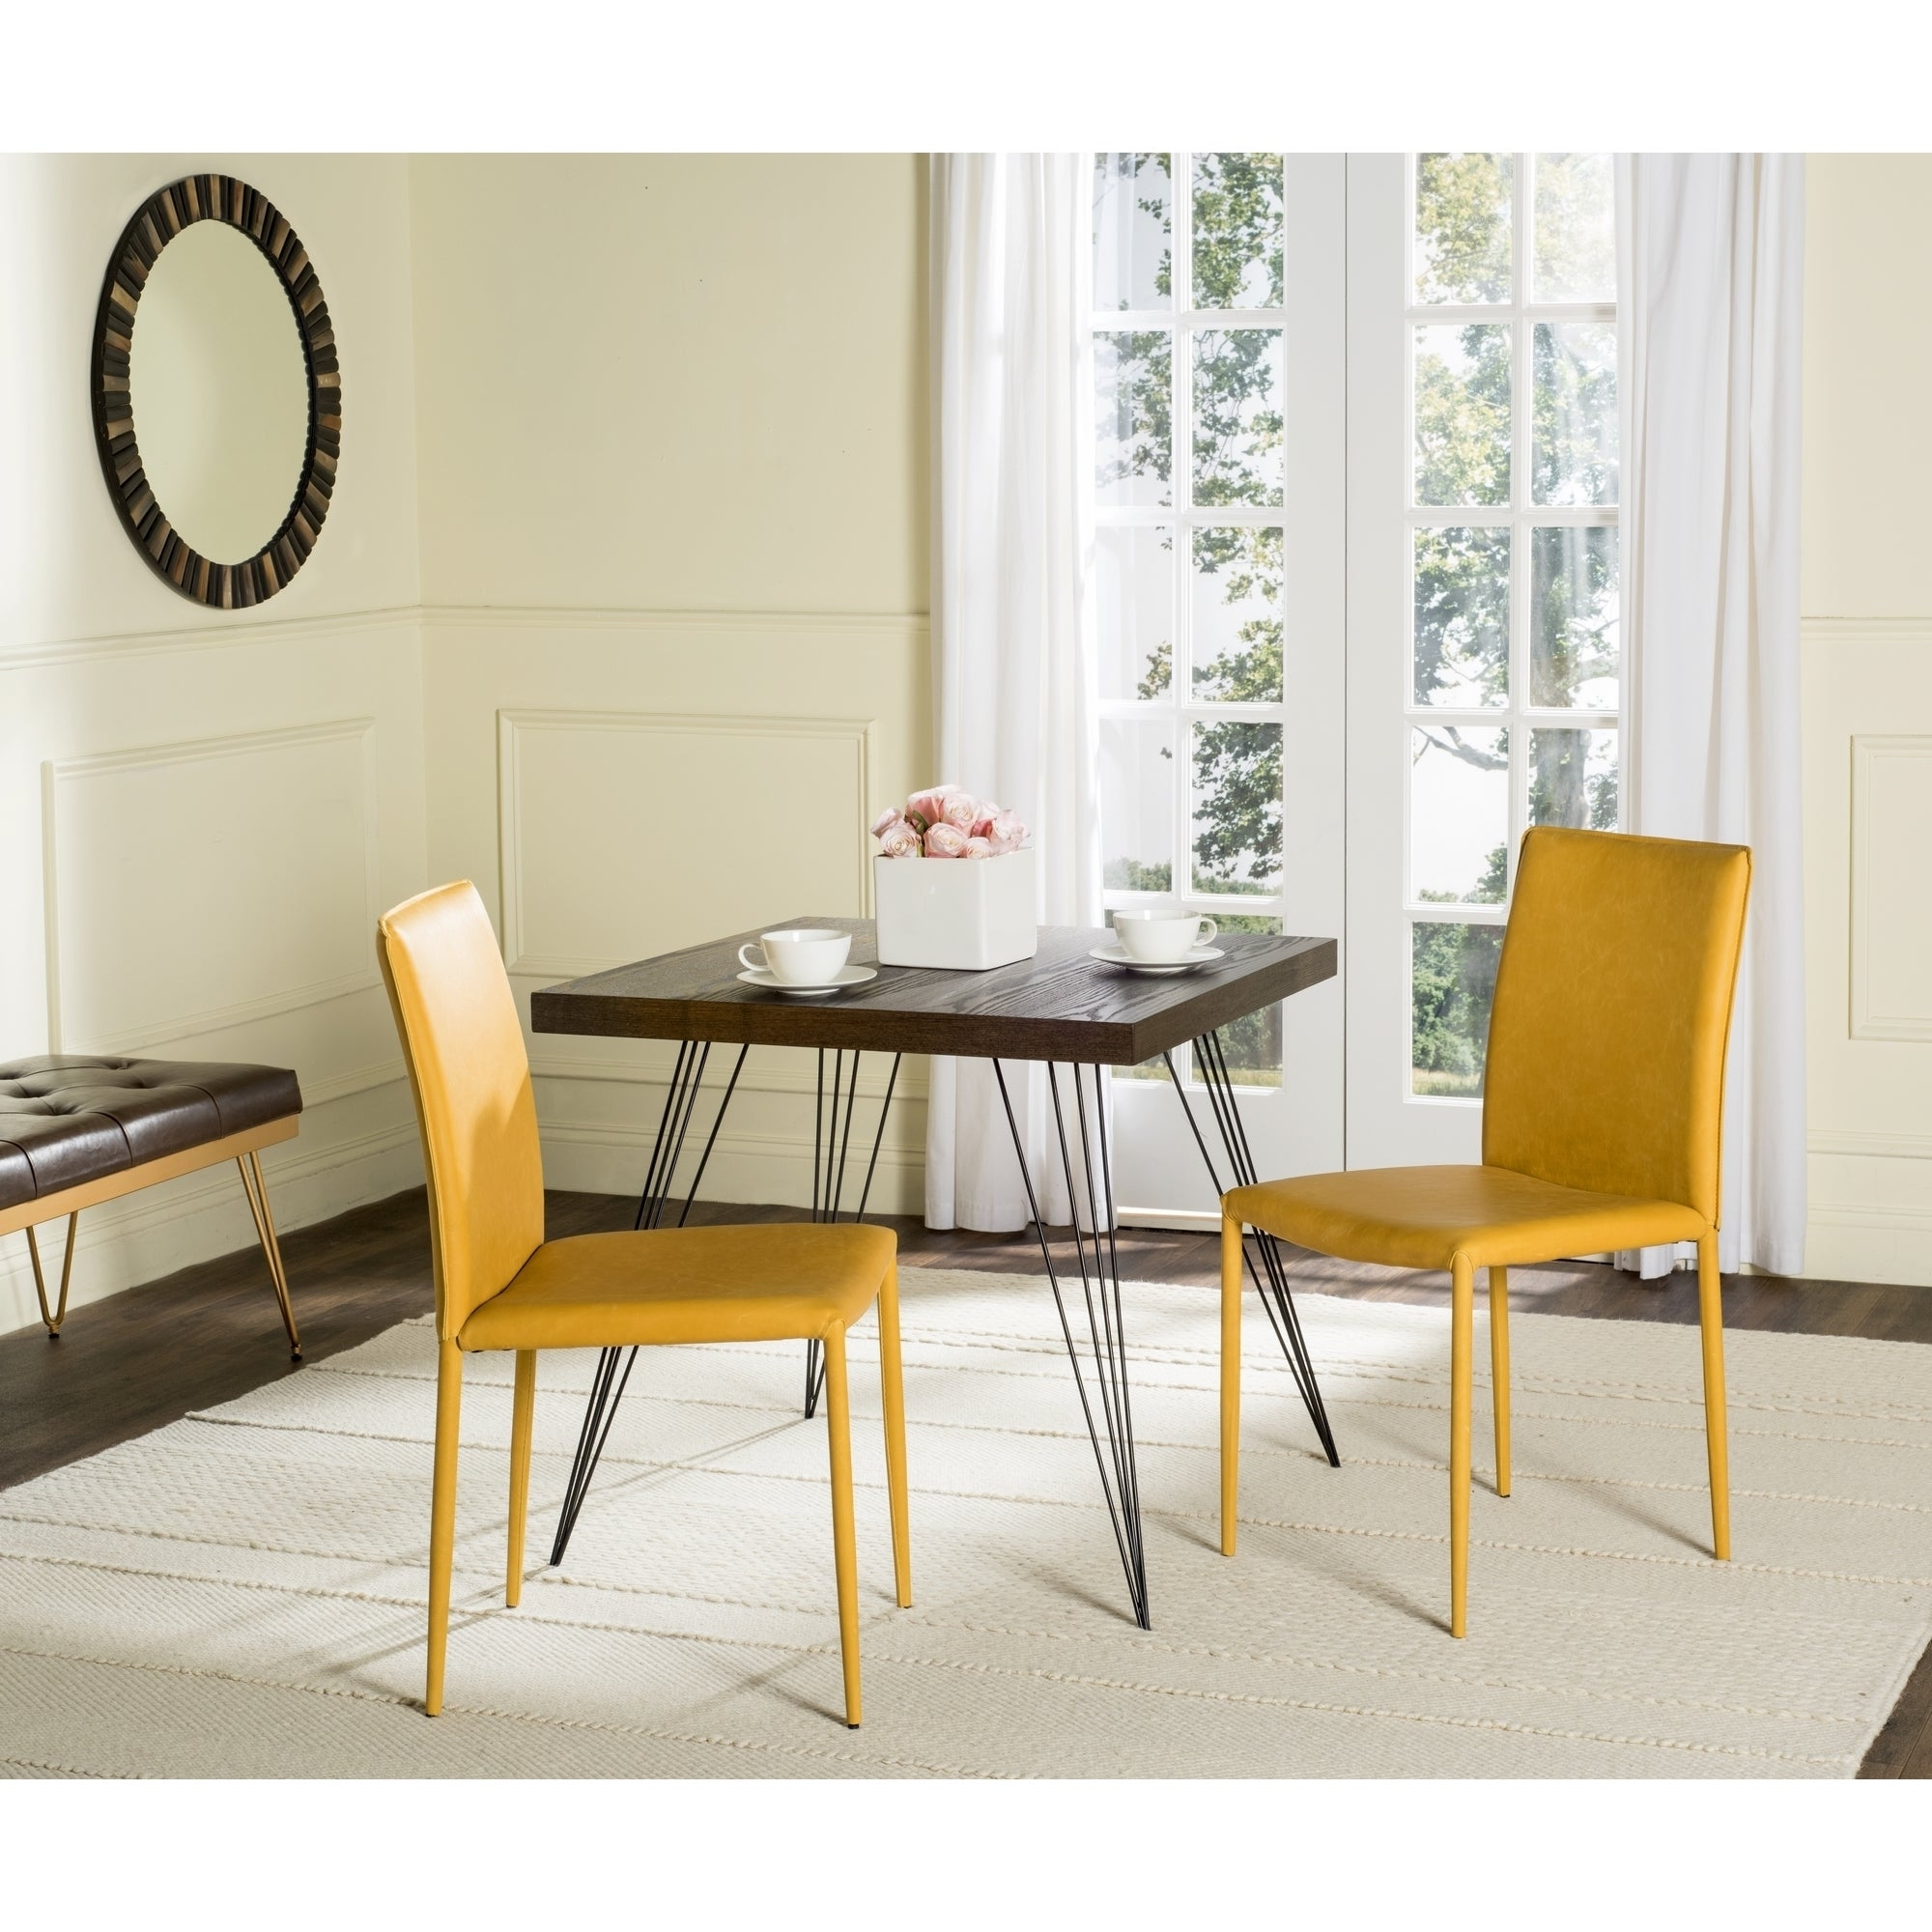 ikea ideas chairs leather plate yellow chair casual dining room set